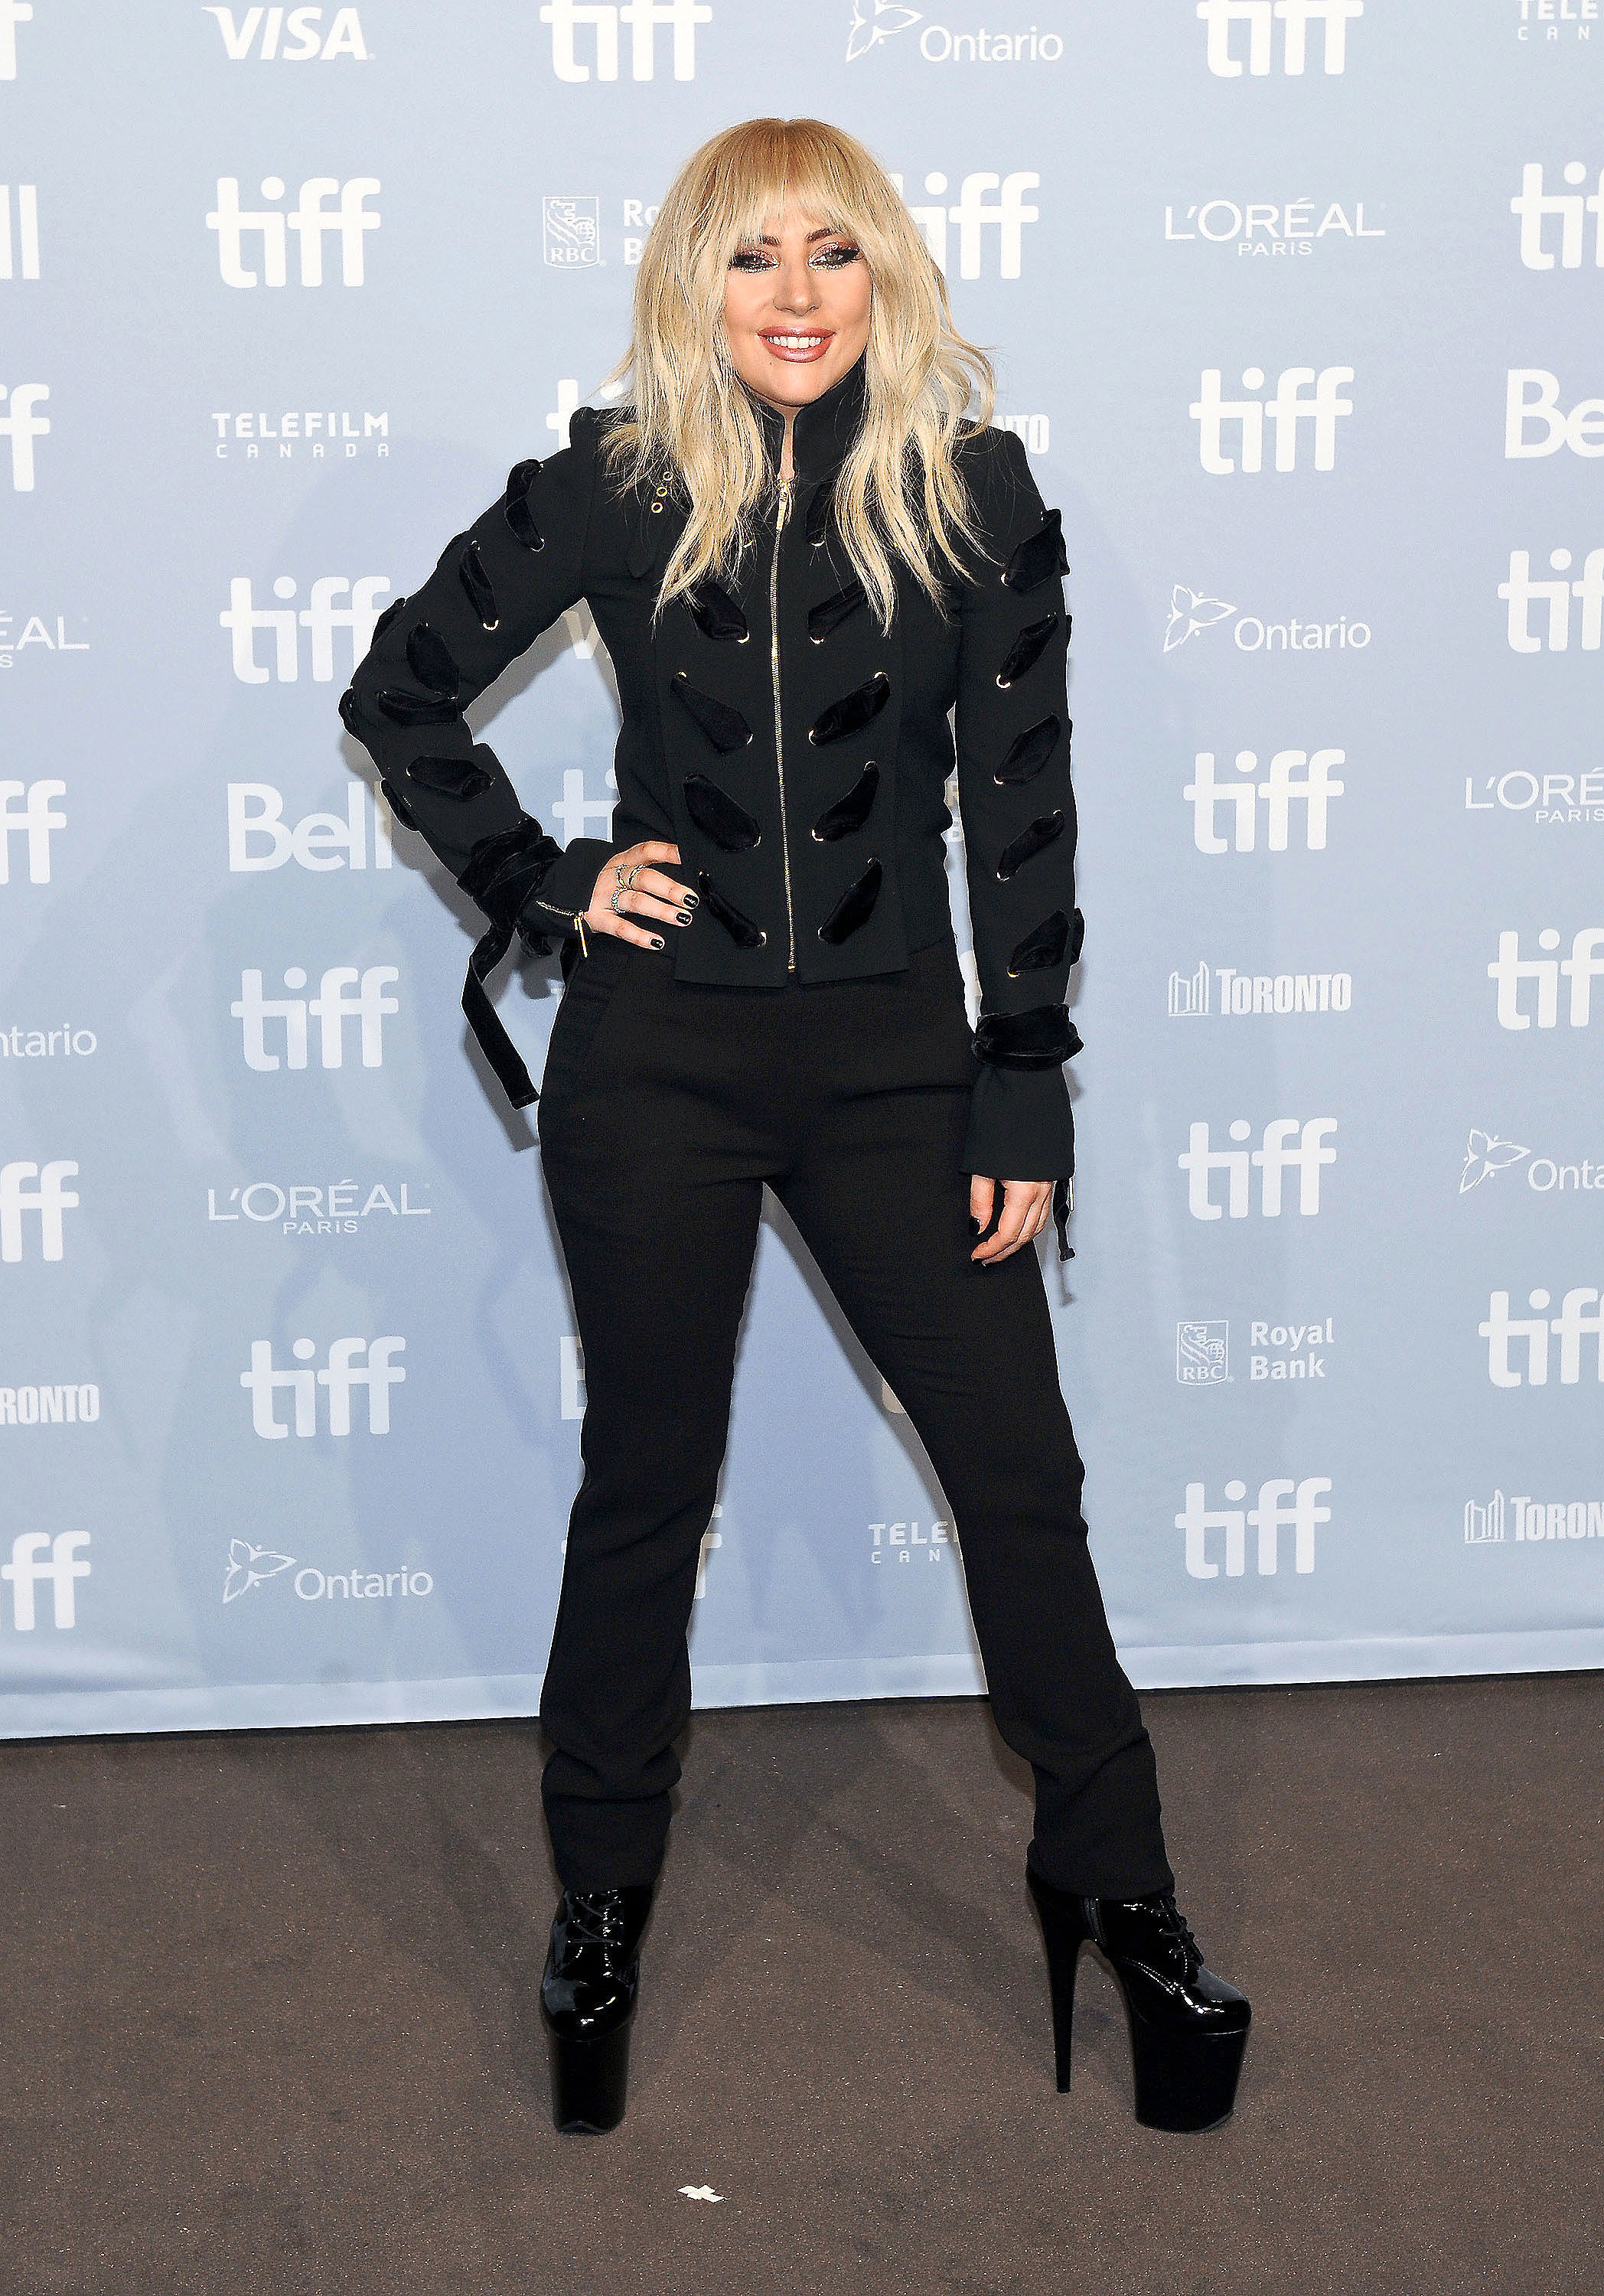 Lady Gaga spotted at the 'Lady Gaga: Five Foot Two' Press Conference during the 2017 Toronto International Film Festival in Toronto on Sept. 8, 2017.